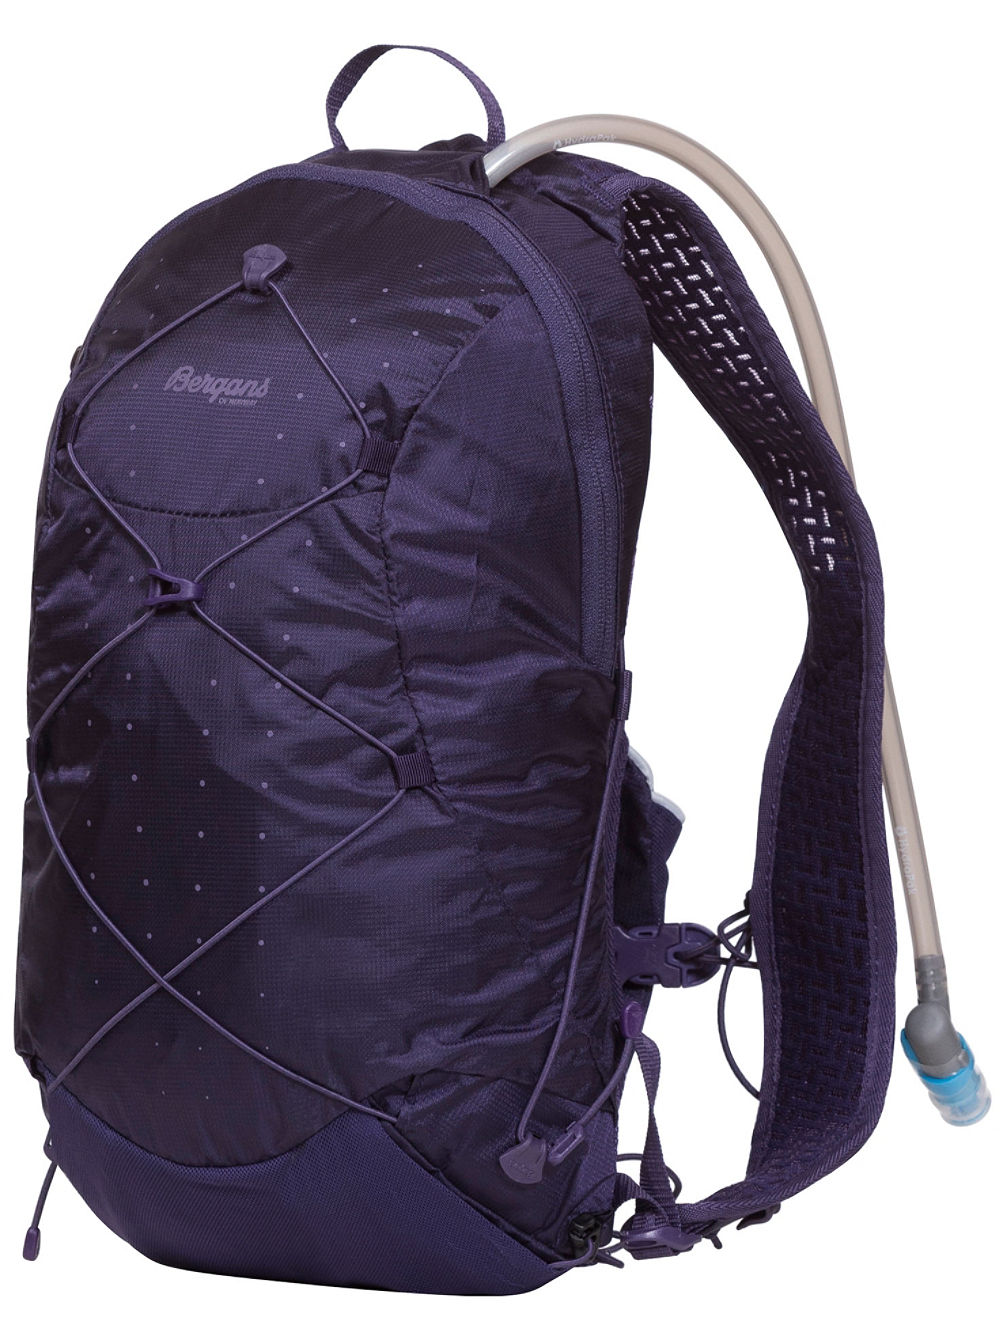 Floyen 4L Backpack